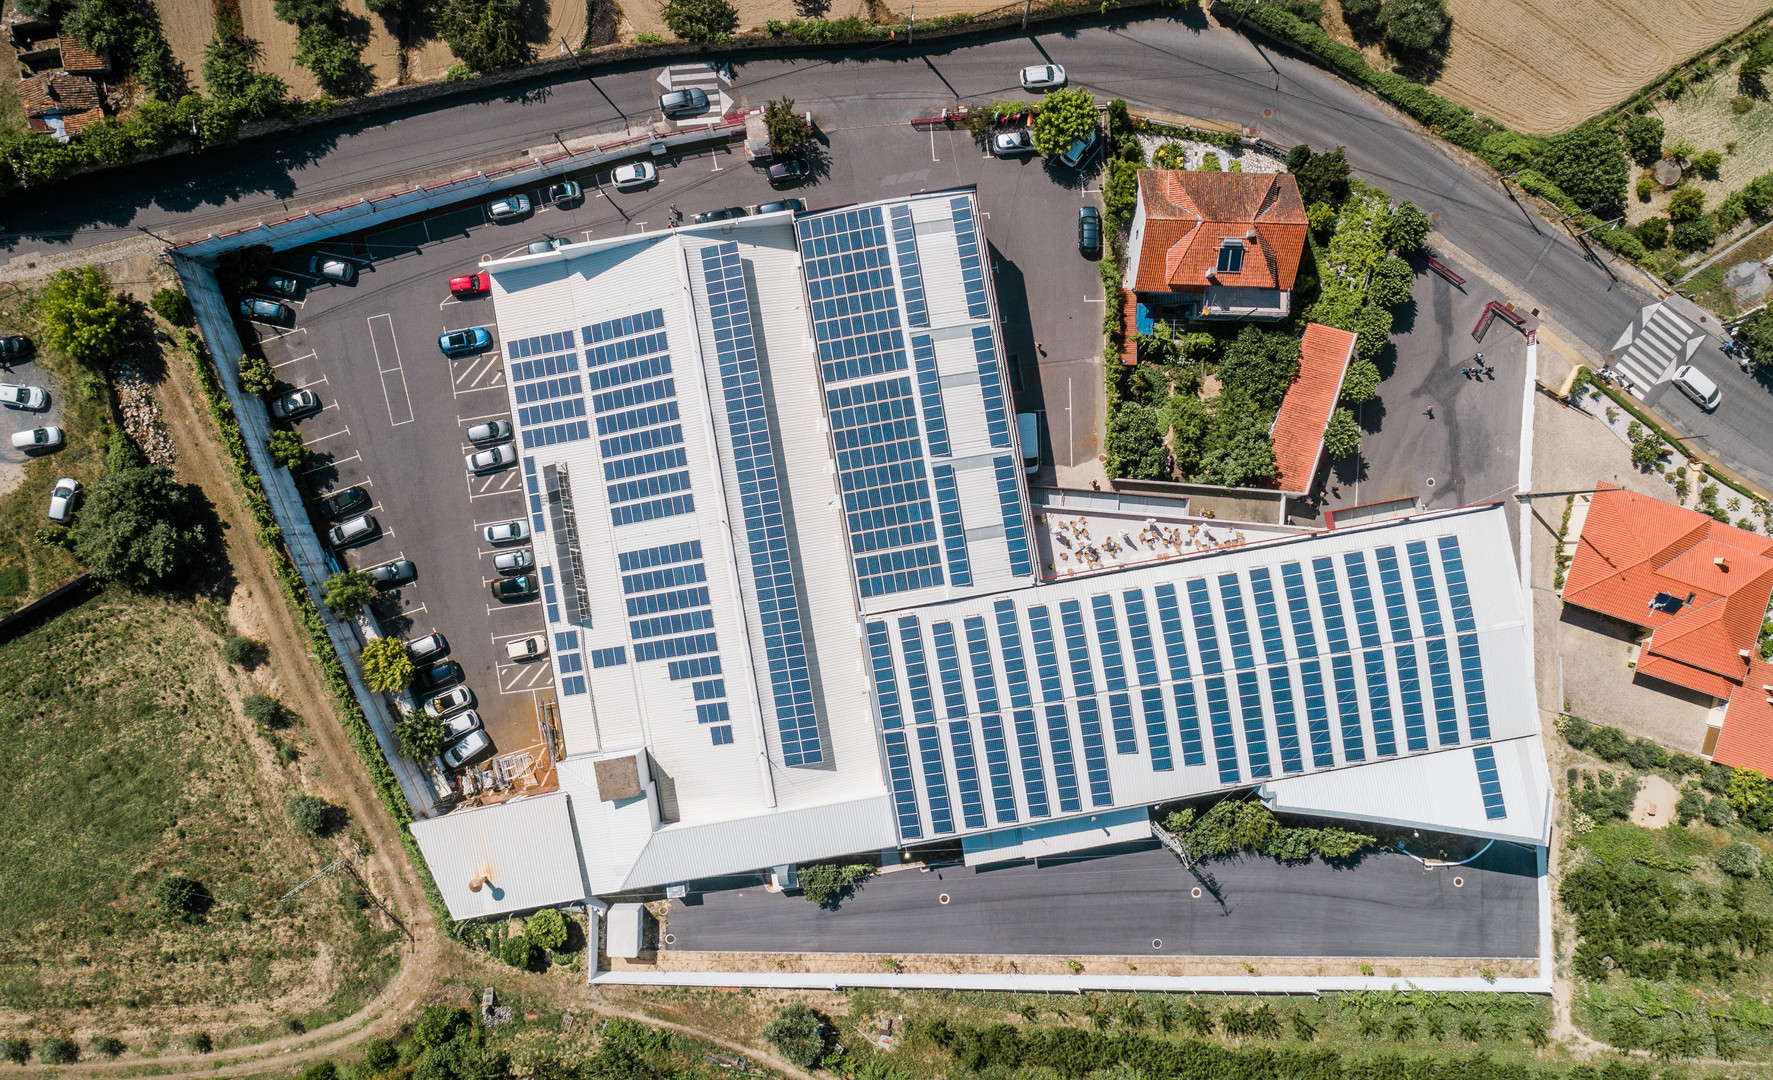 More than 1000 Photovoltaic Panels able to produce 75% of own energy.